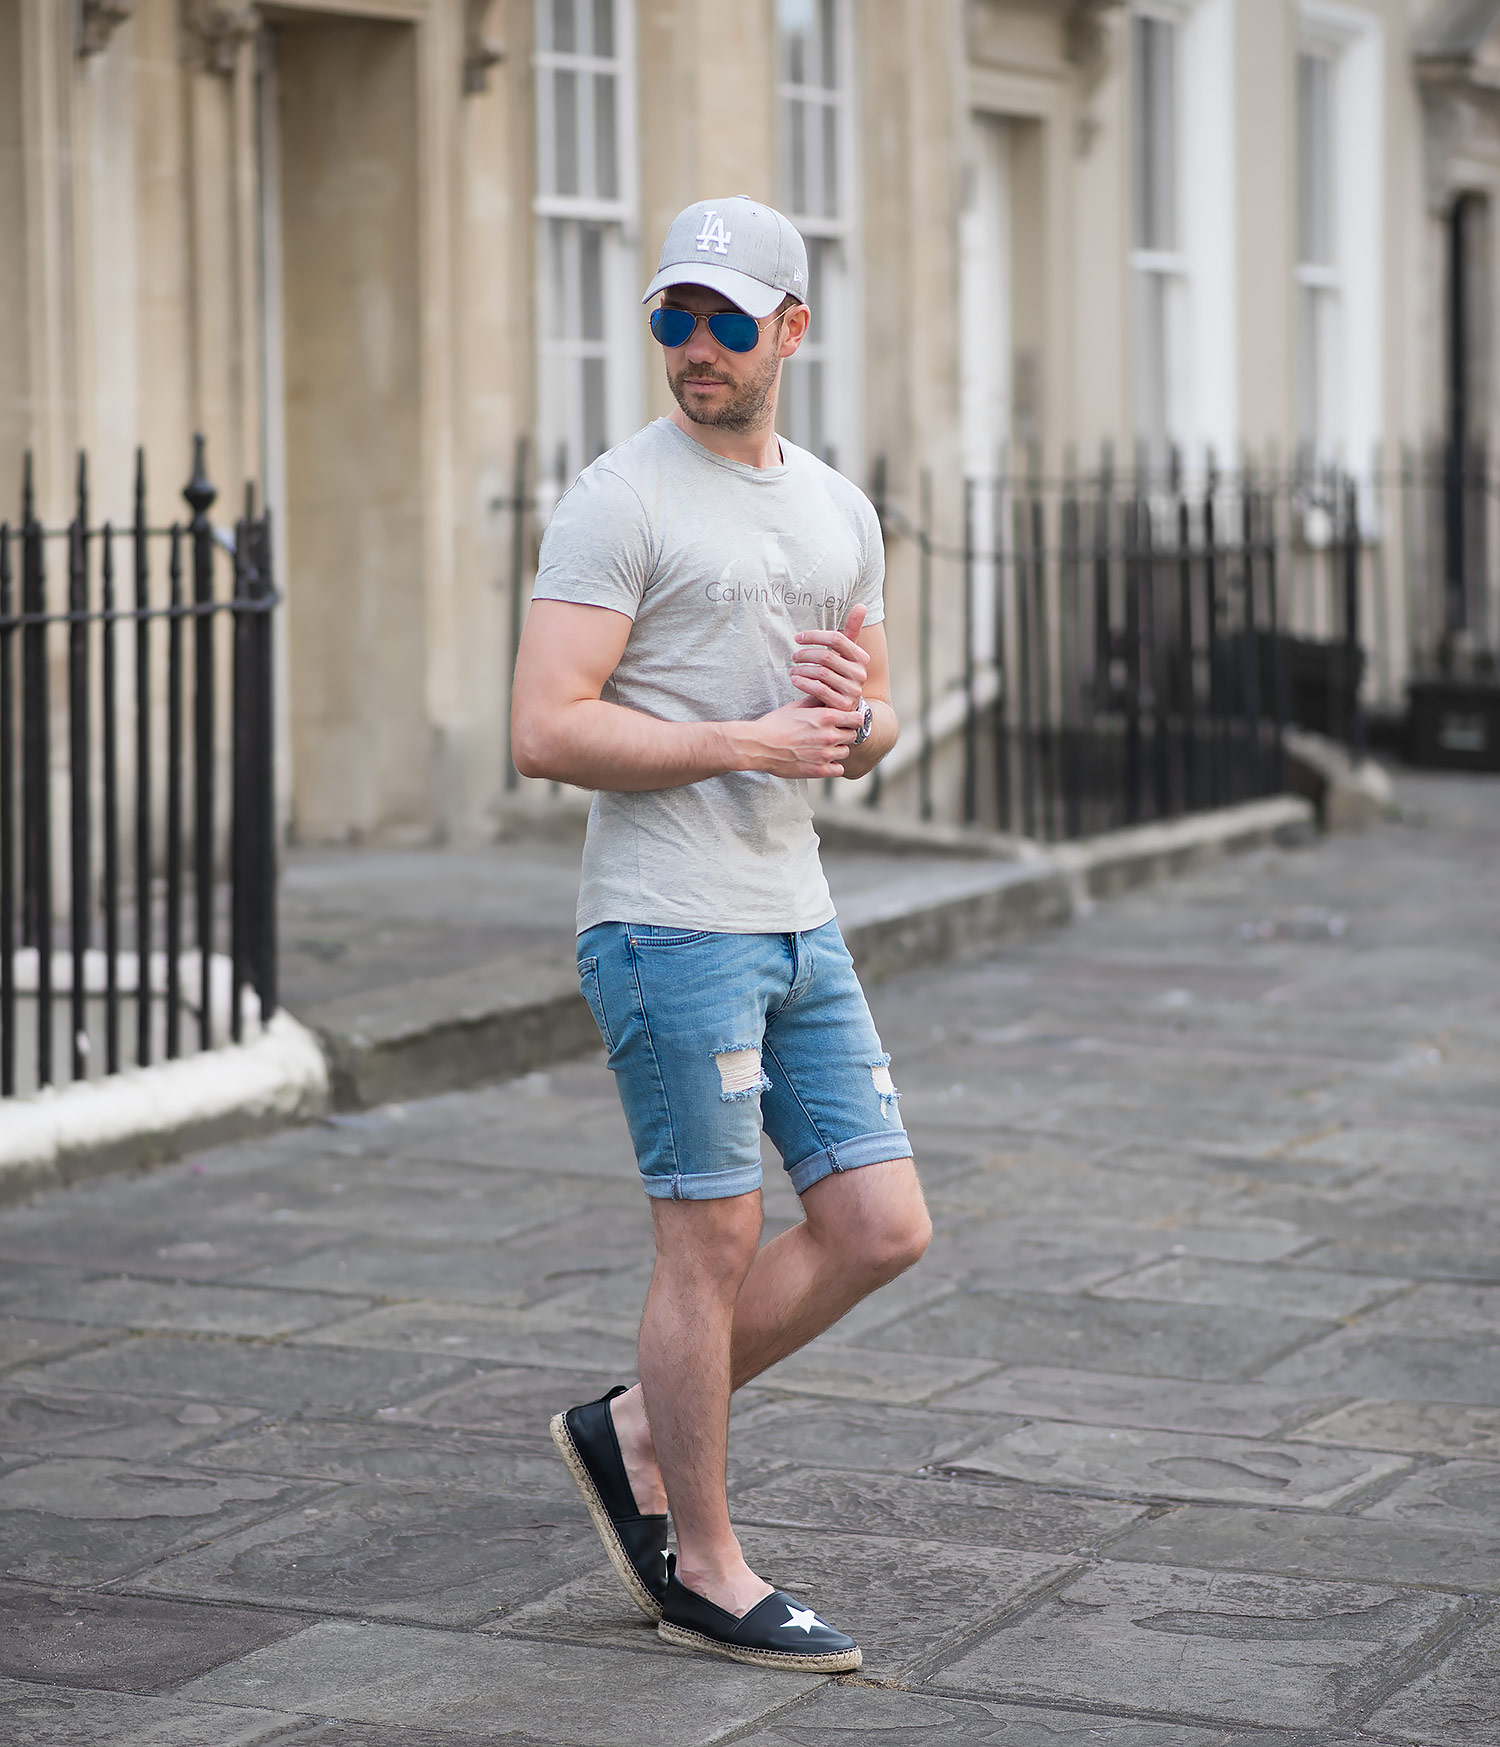 Calvin Klein T Shirt And Topman Skinny Denim Shorts Outfit | Your Average Guy